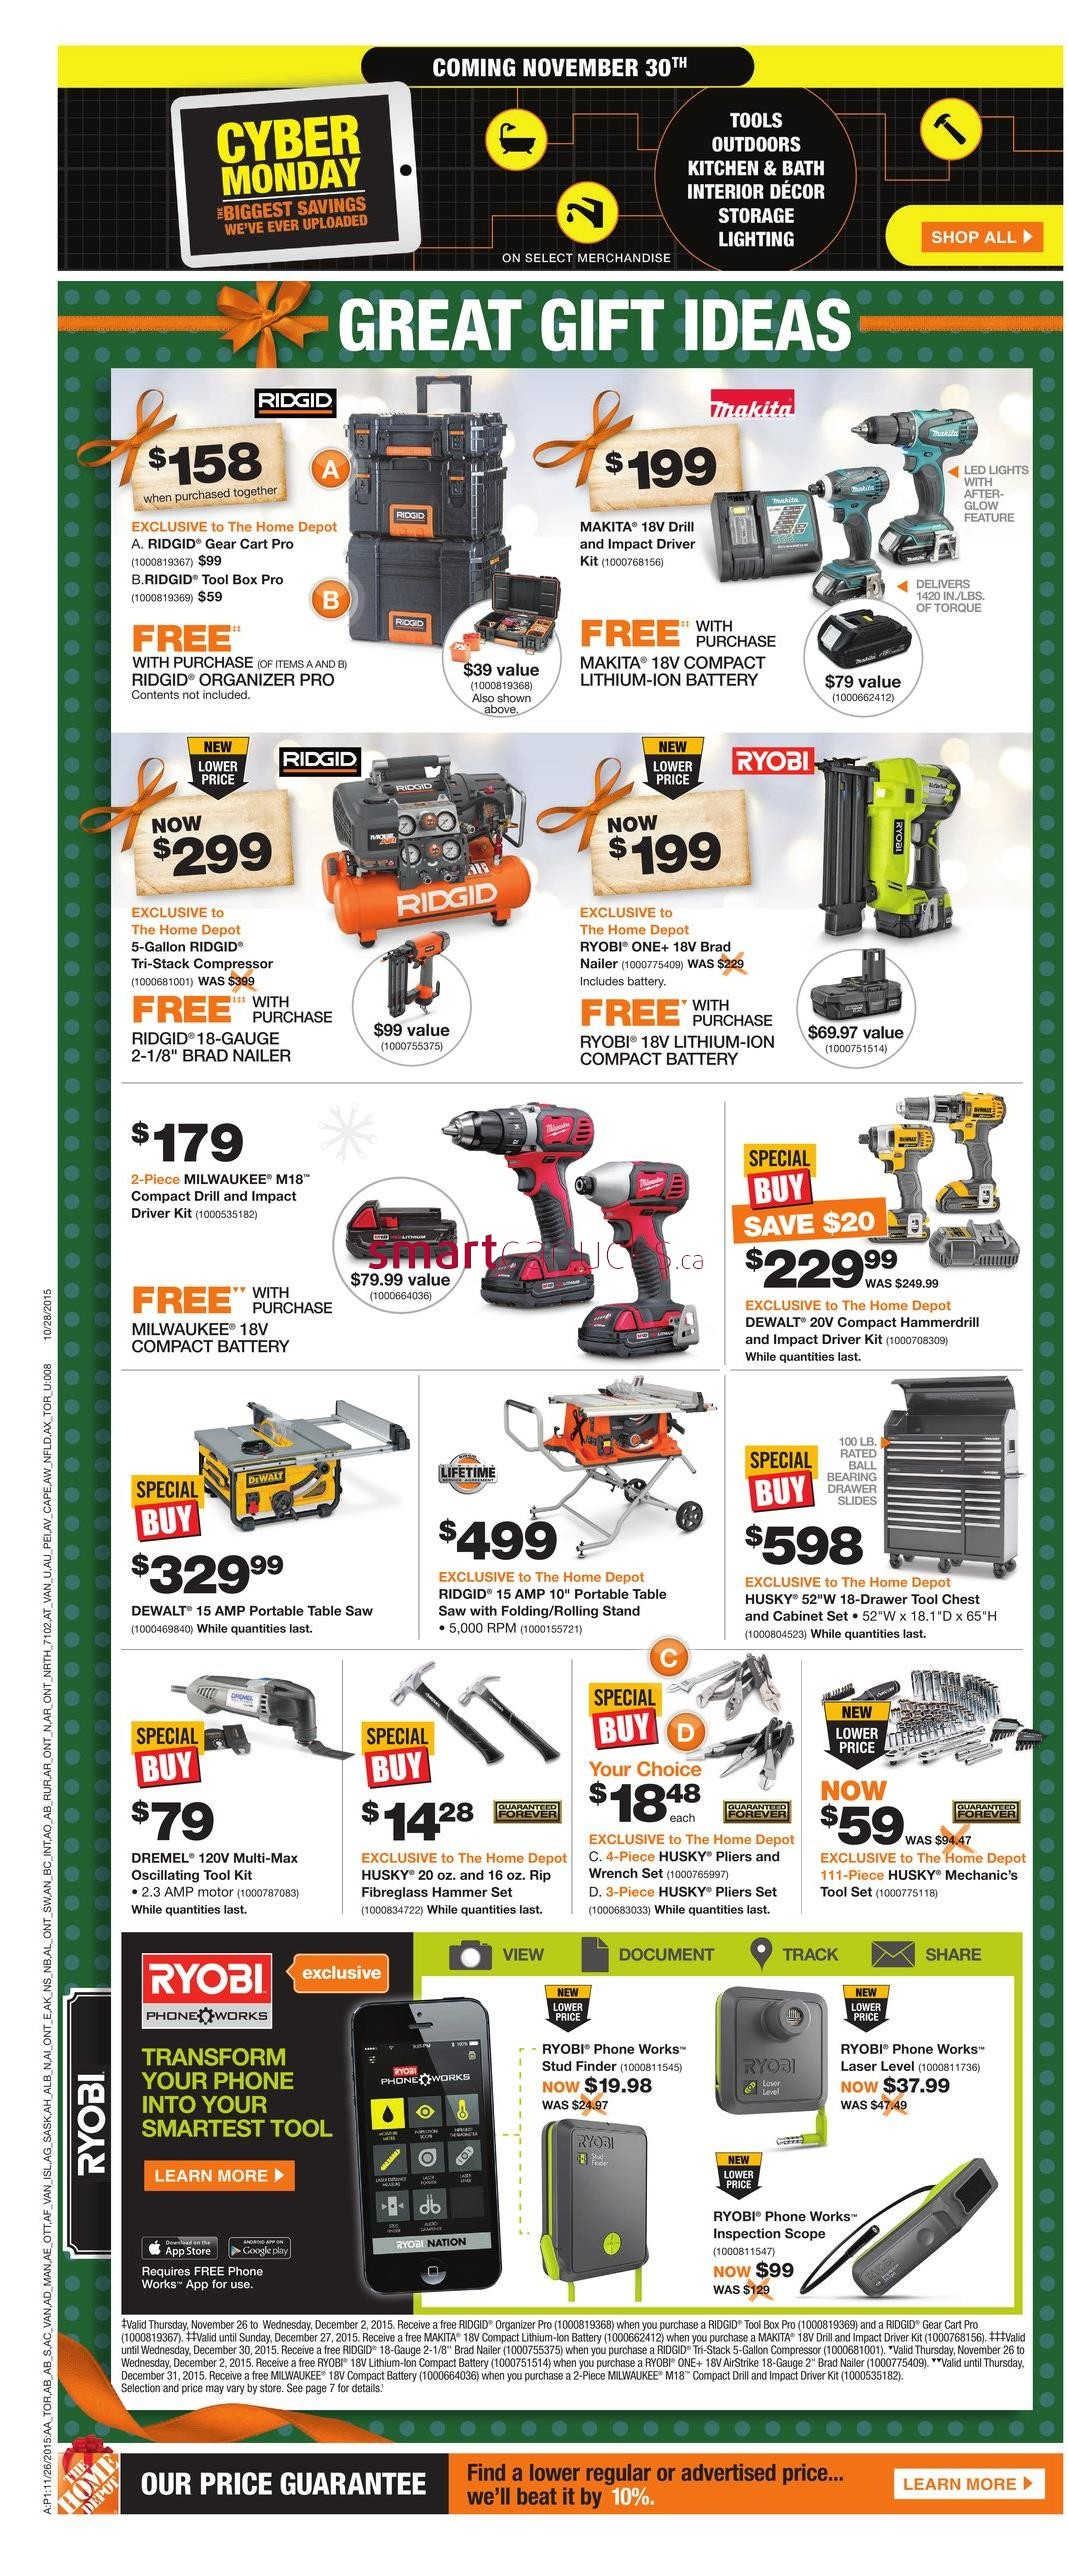 The Home Depot is the world's largest home improvement retailer – a one-stop shop for tools and supplies for every project. From redesigning the yard to installing a fan in the living room ceiling, you're sure to save on every project when you apply Home Depot coupons to your online order.